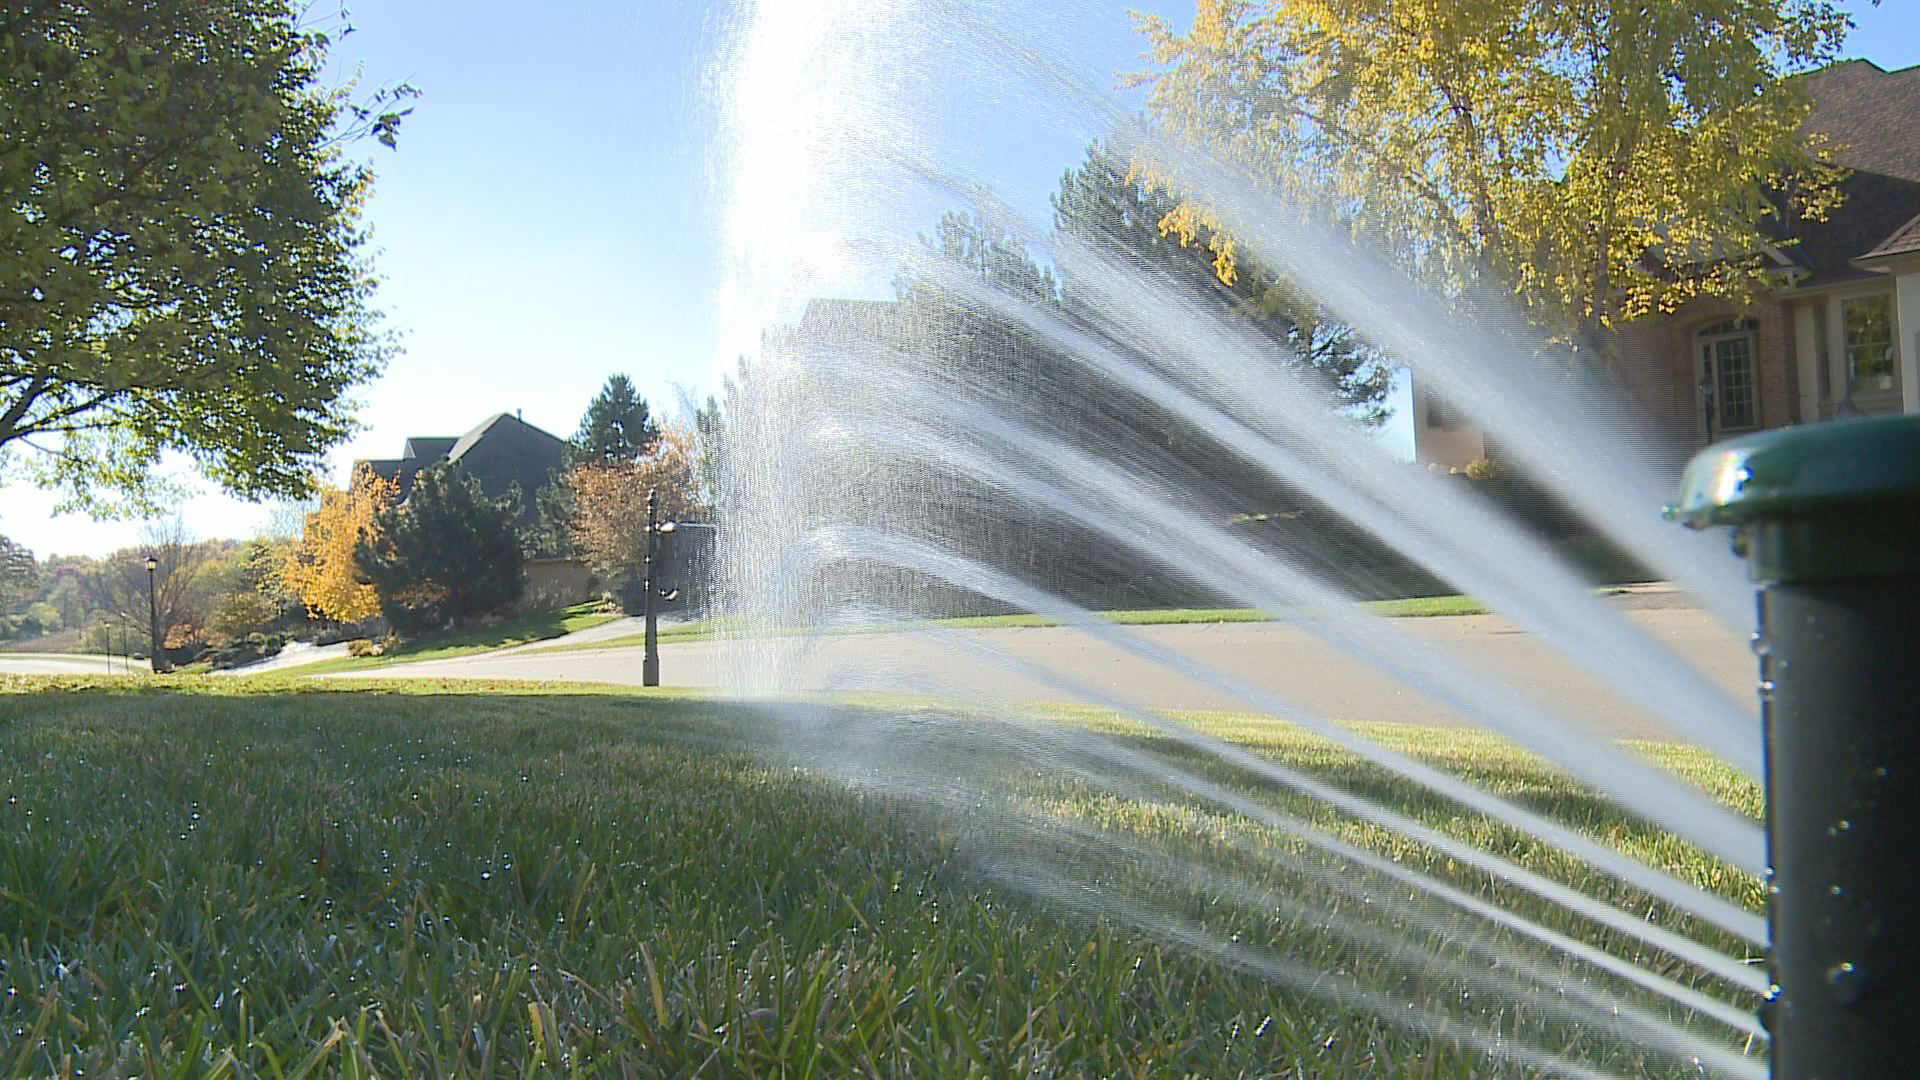 IrriGreen says its 'Genius' system puts water in precisely the right place – and nowhere else. Photo: IrriGreen.com